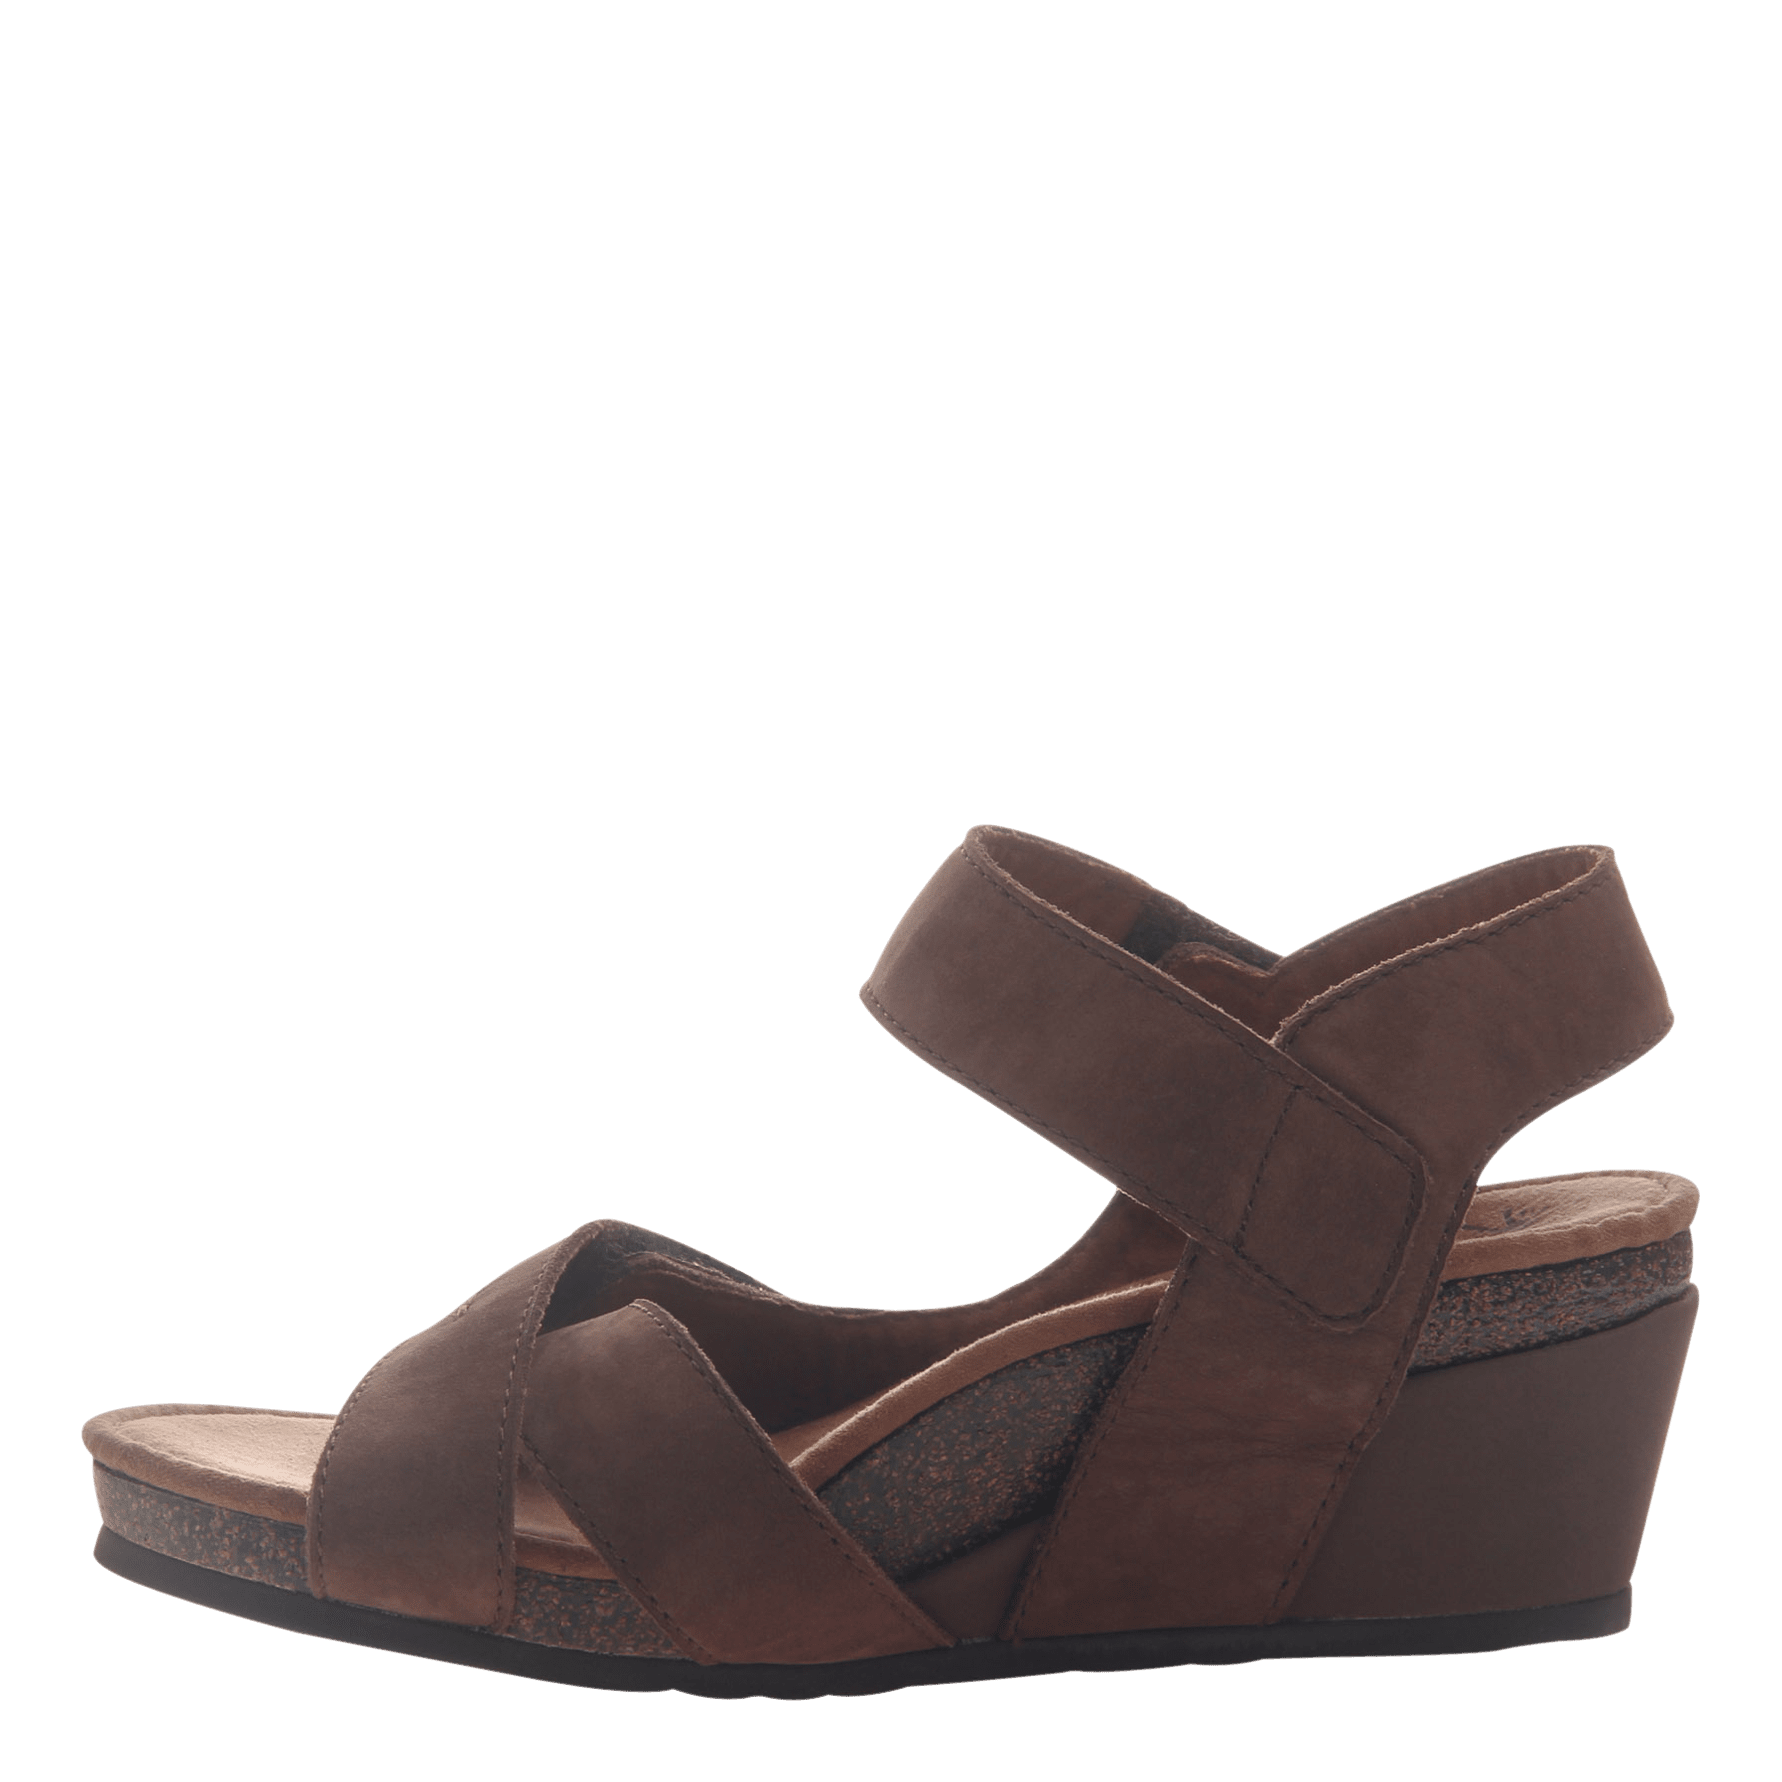 Sandey in Coffeebean Wedge  Sandales  Wedge  Damens's Schuhes by OTBT 5db866